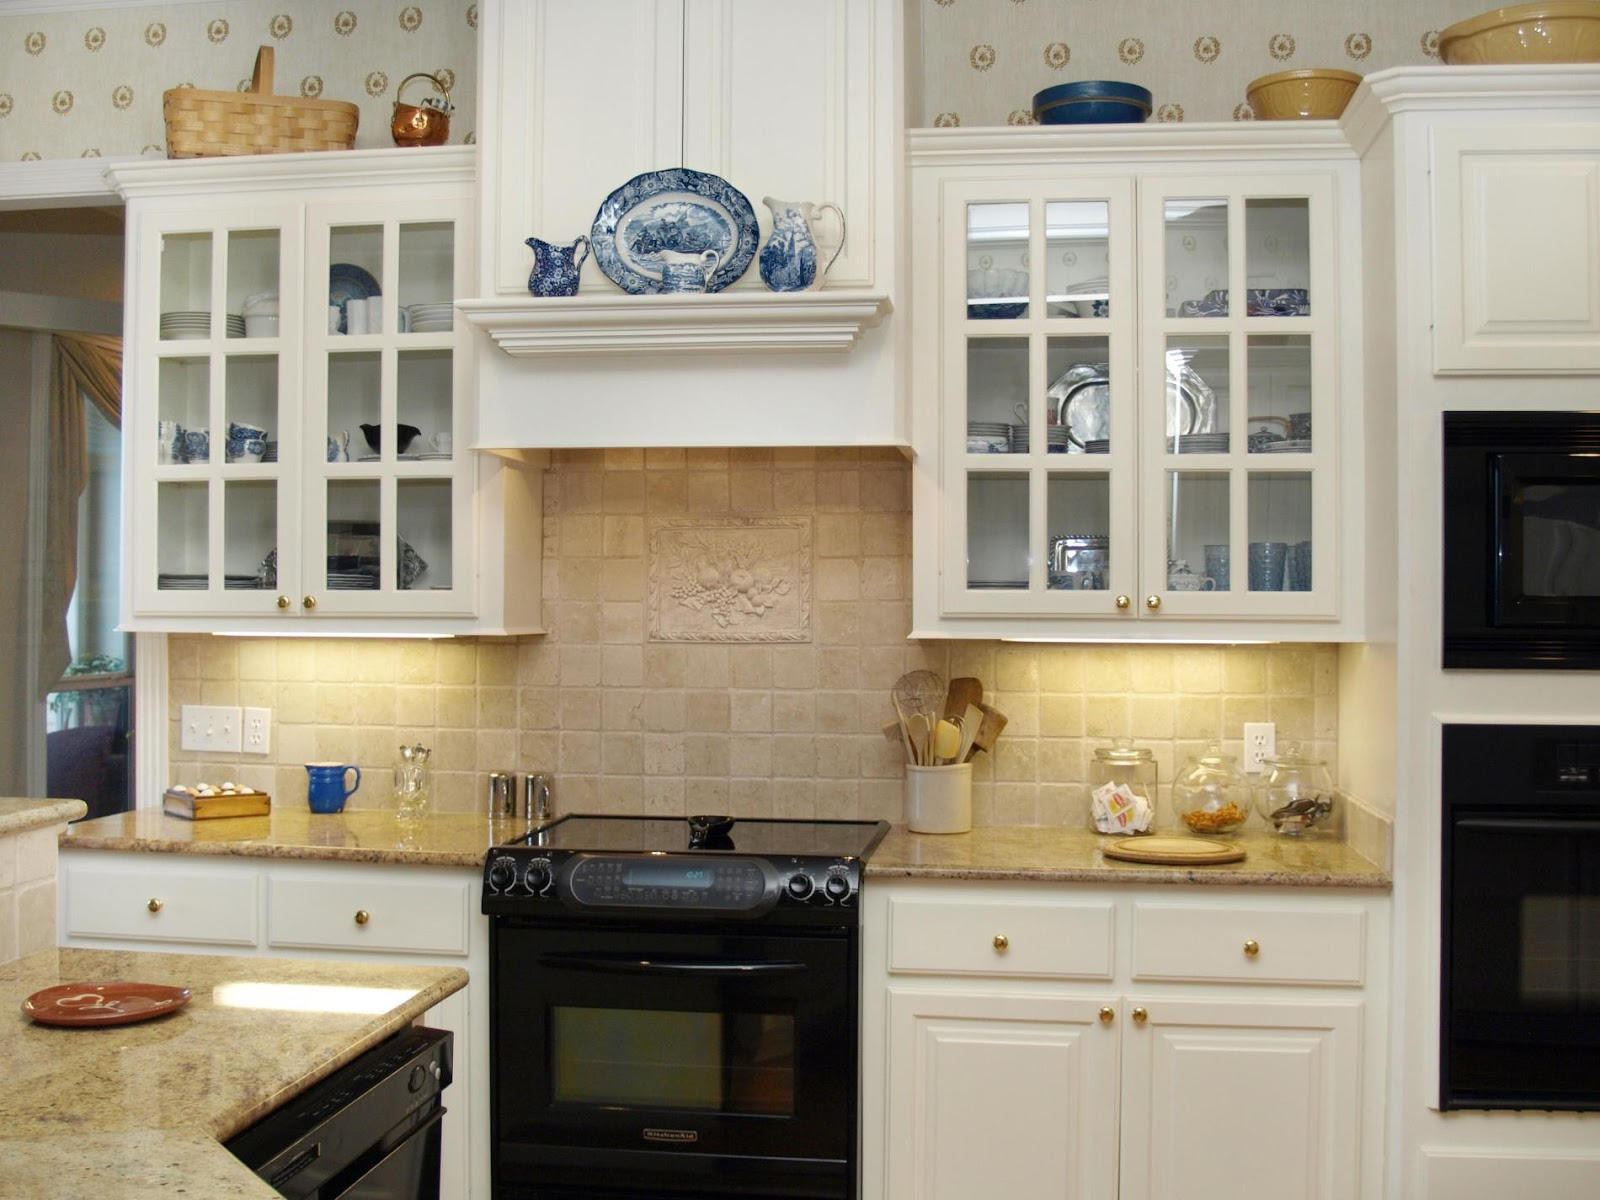 Kitchen shelves decoration dream house experience Ideas to decorate your house